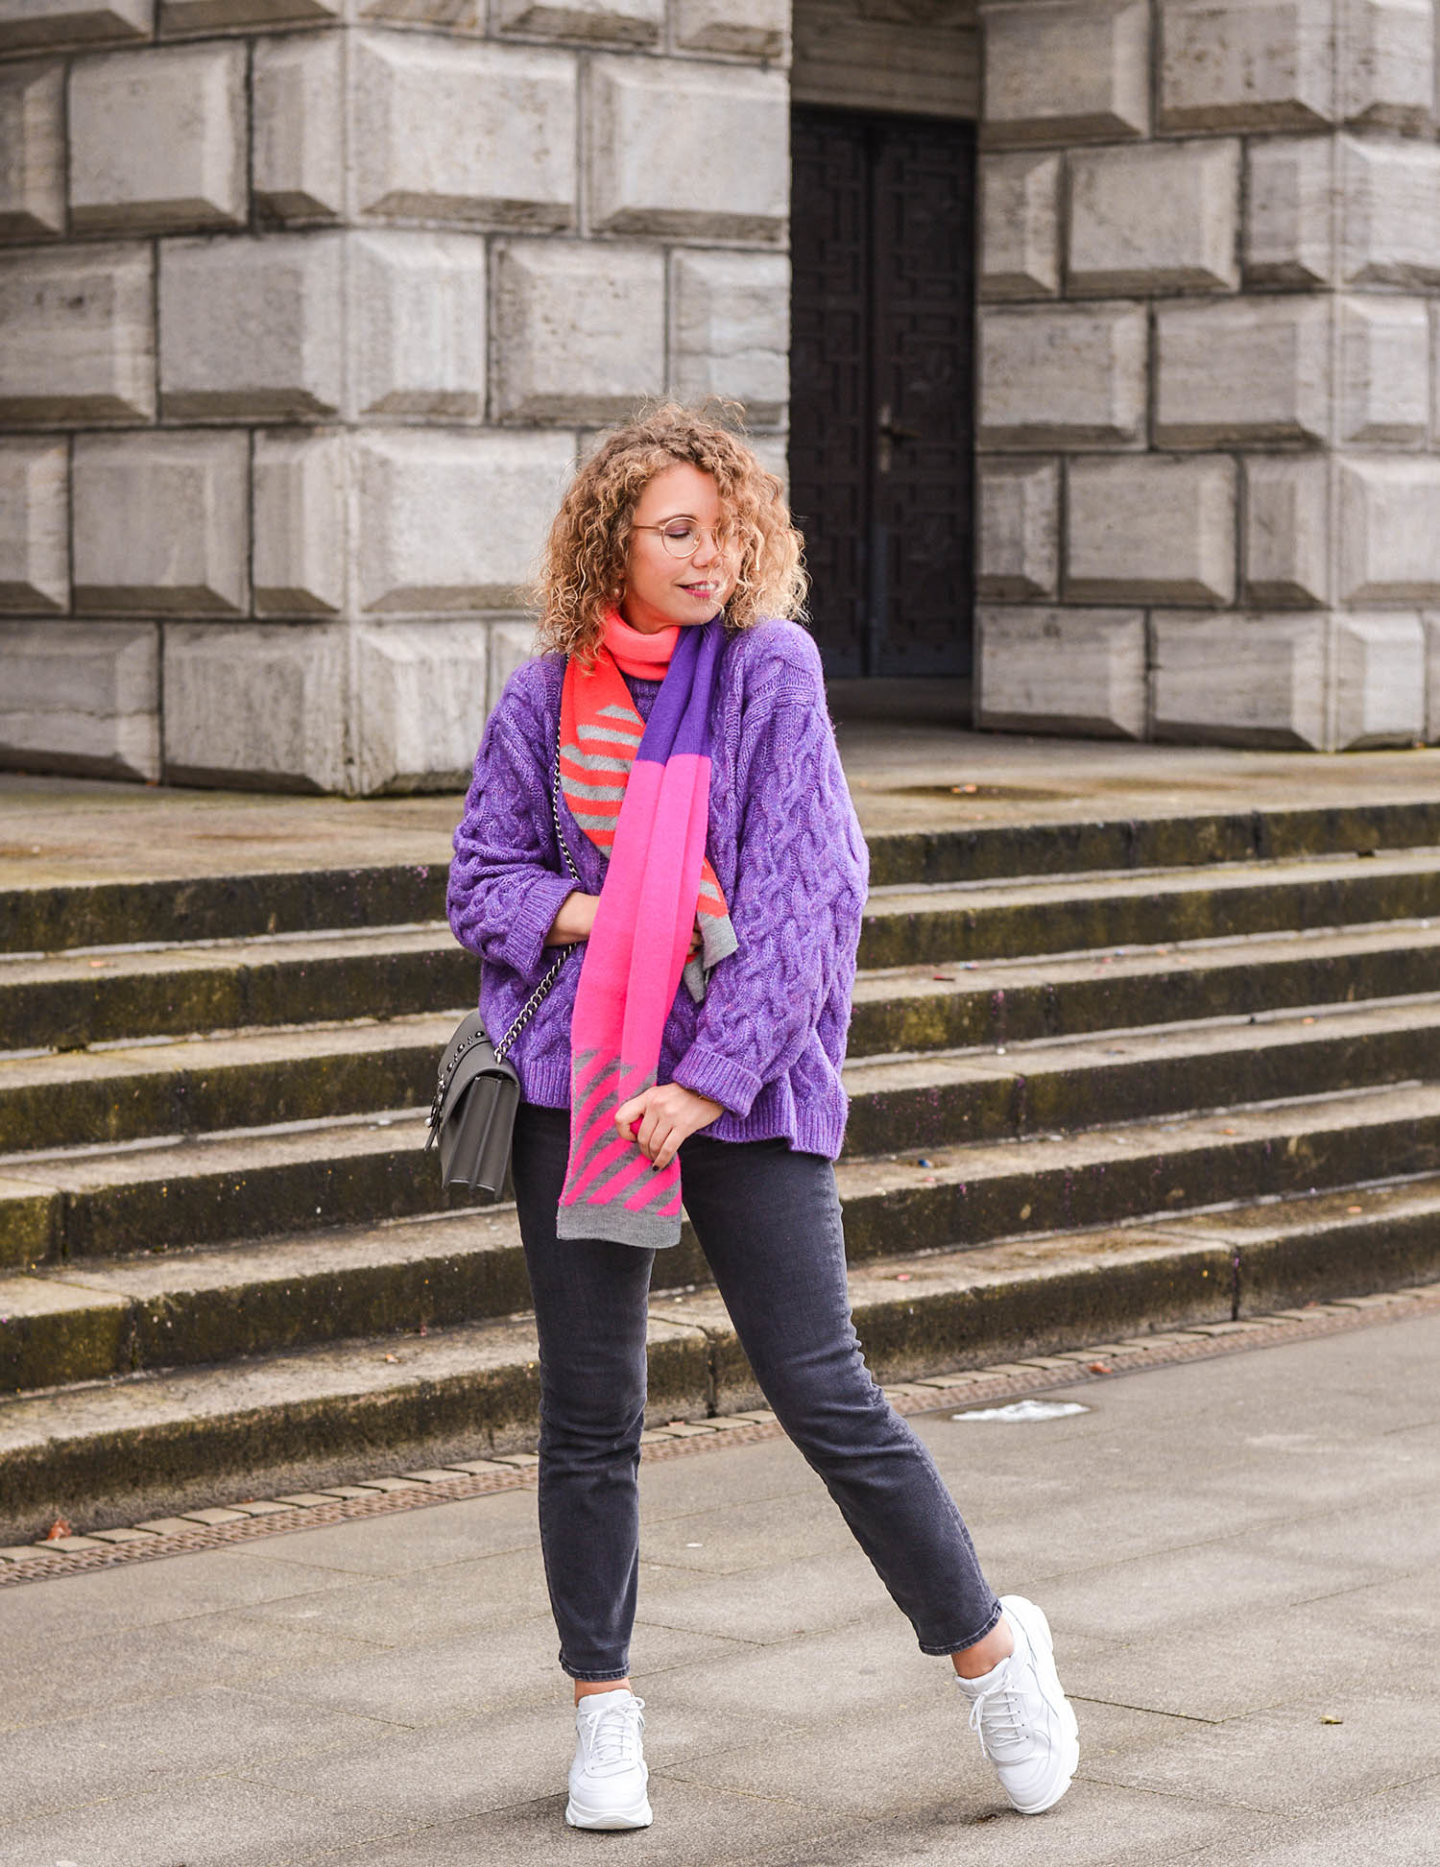 weiße sneaker mit plateausohle und color blocking outfit